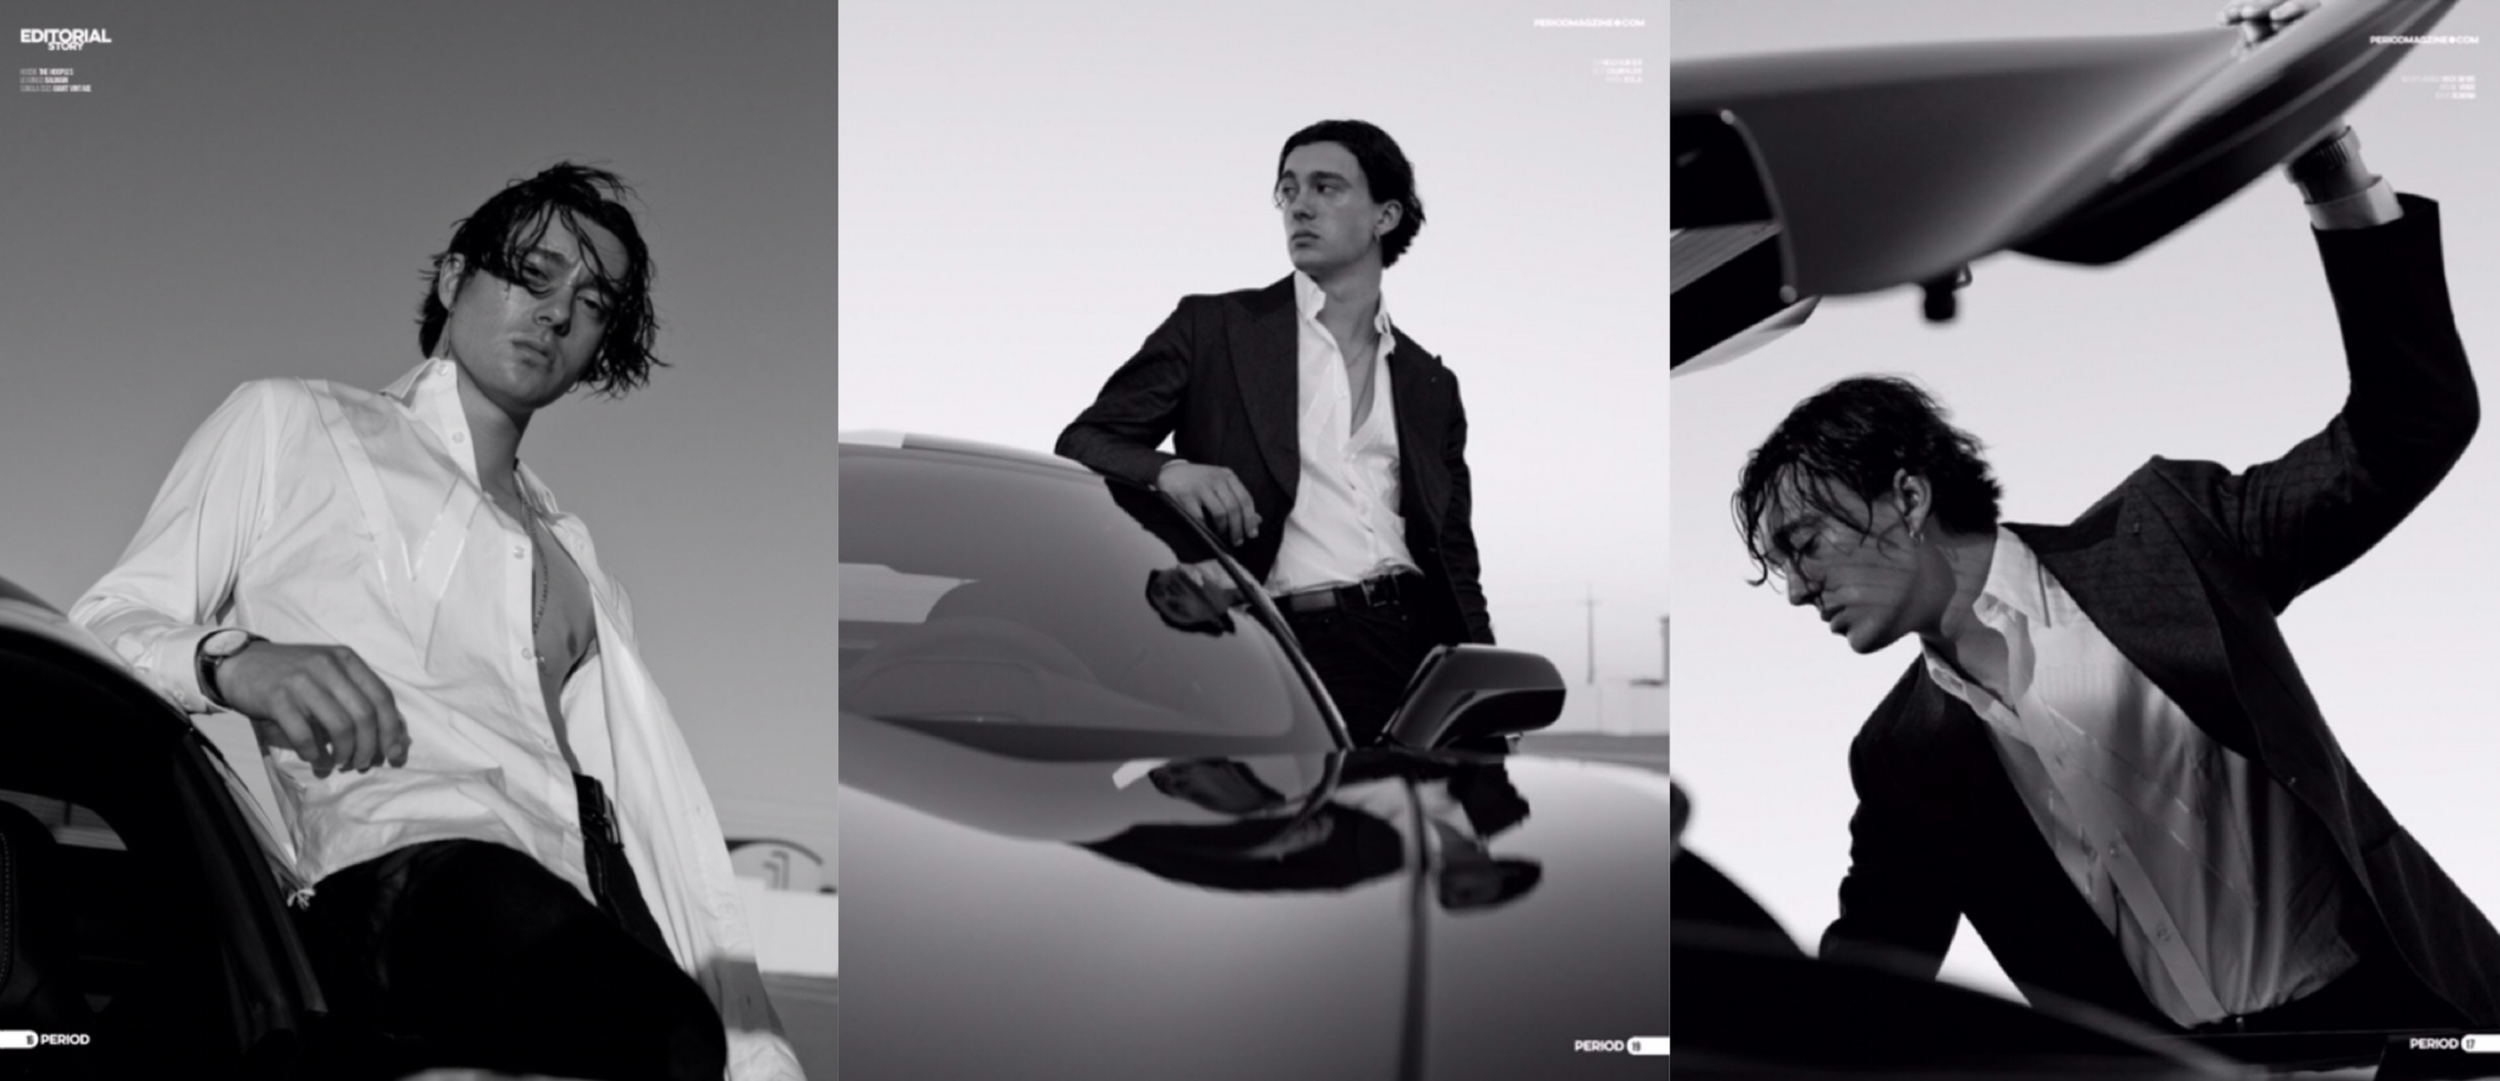 Summer Drive Editorial Period Magazine (P2).PNG